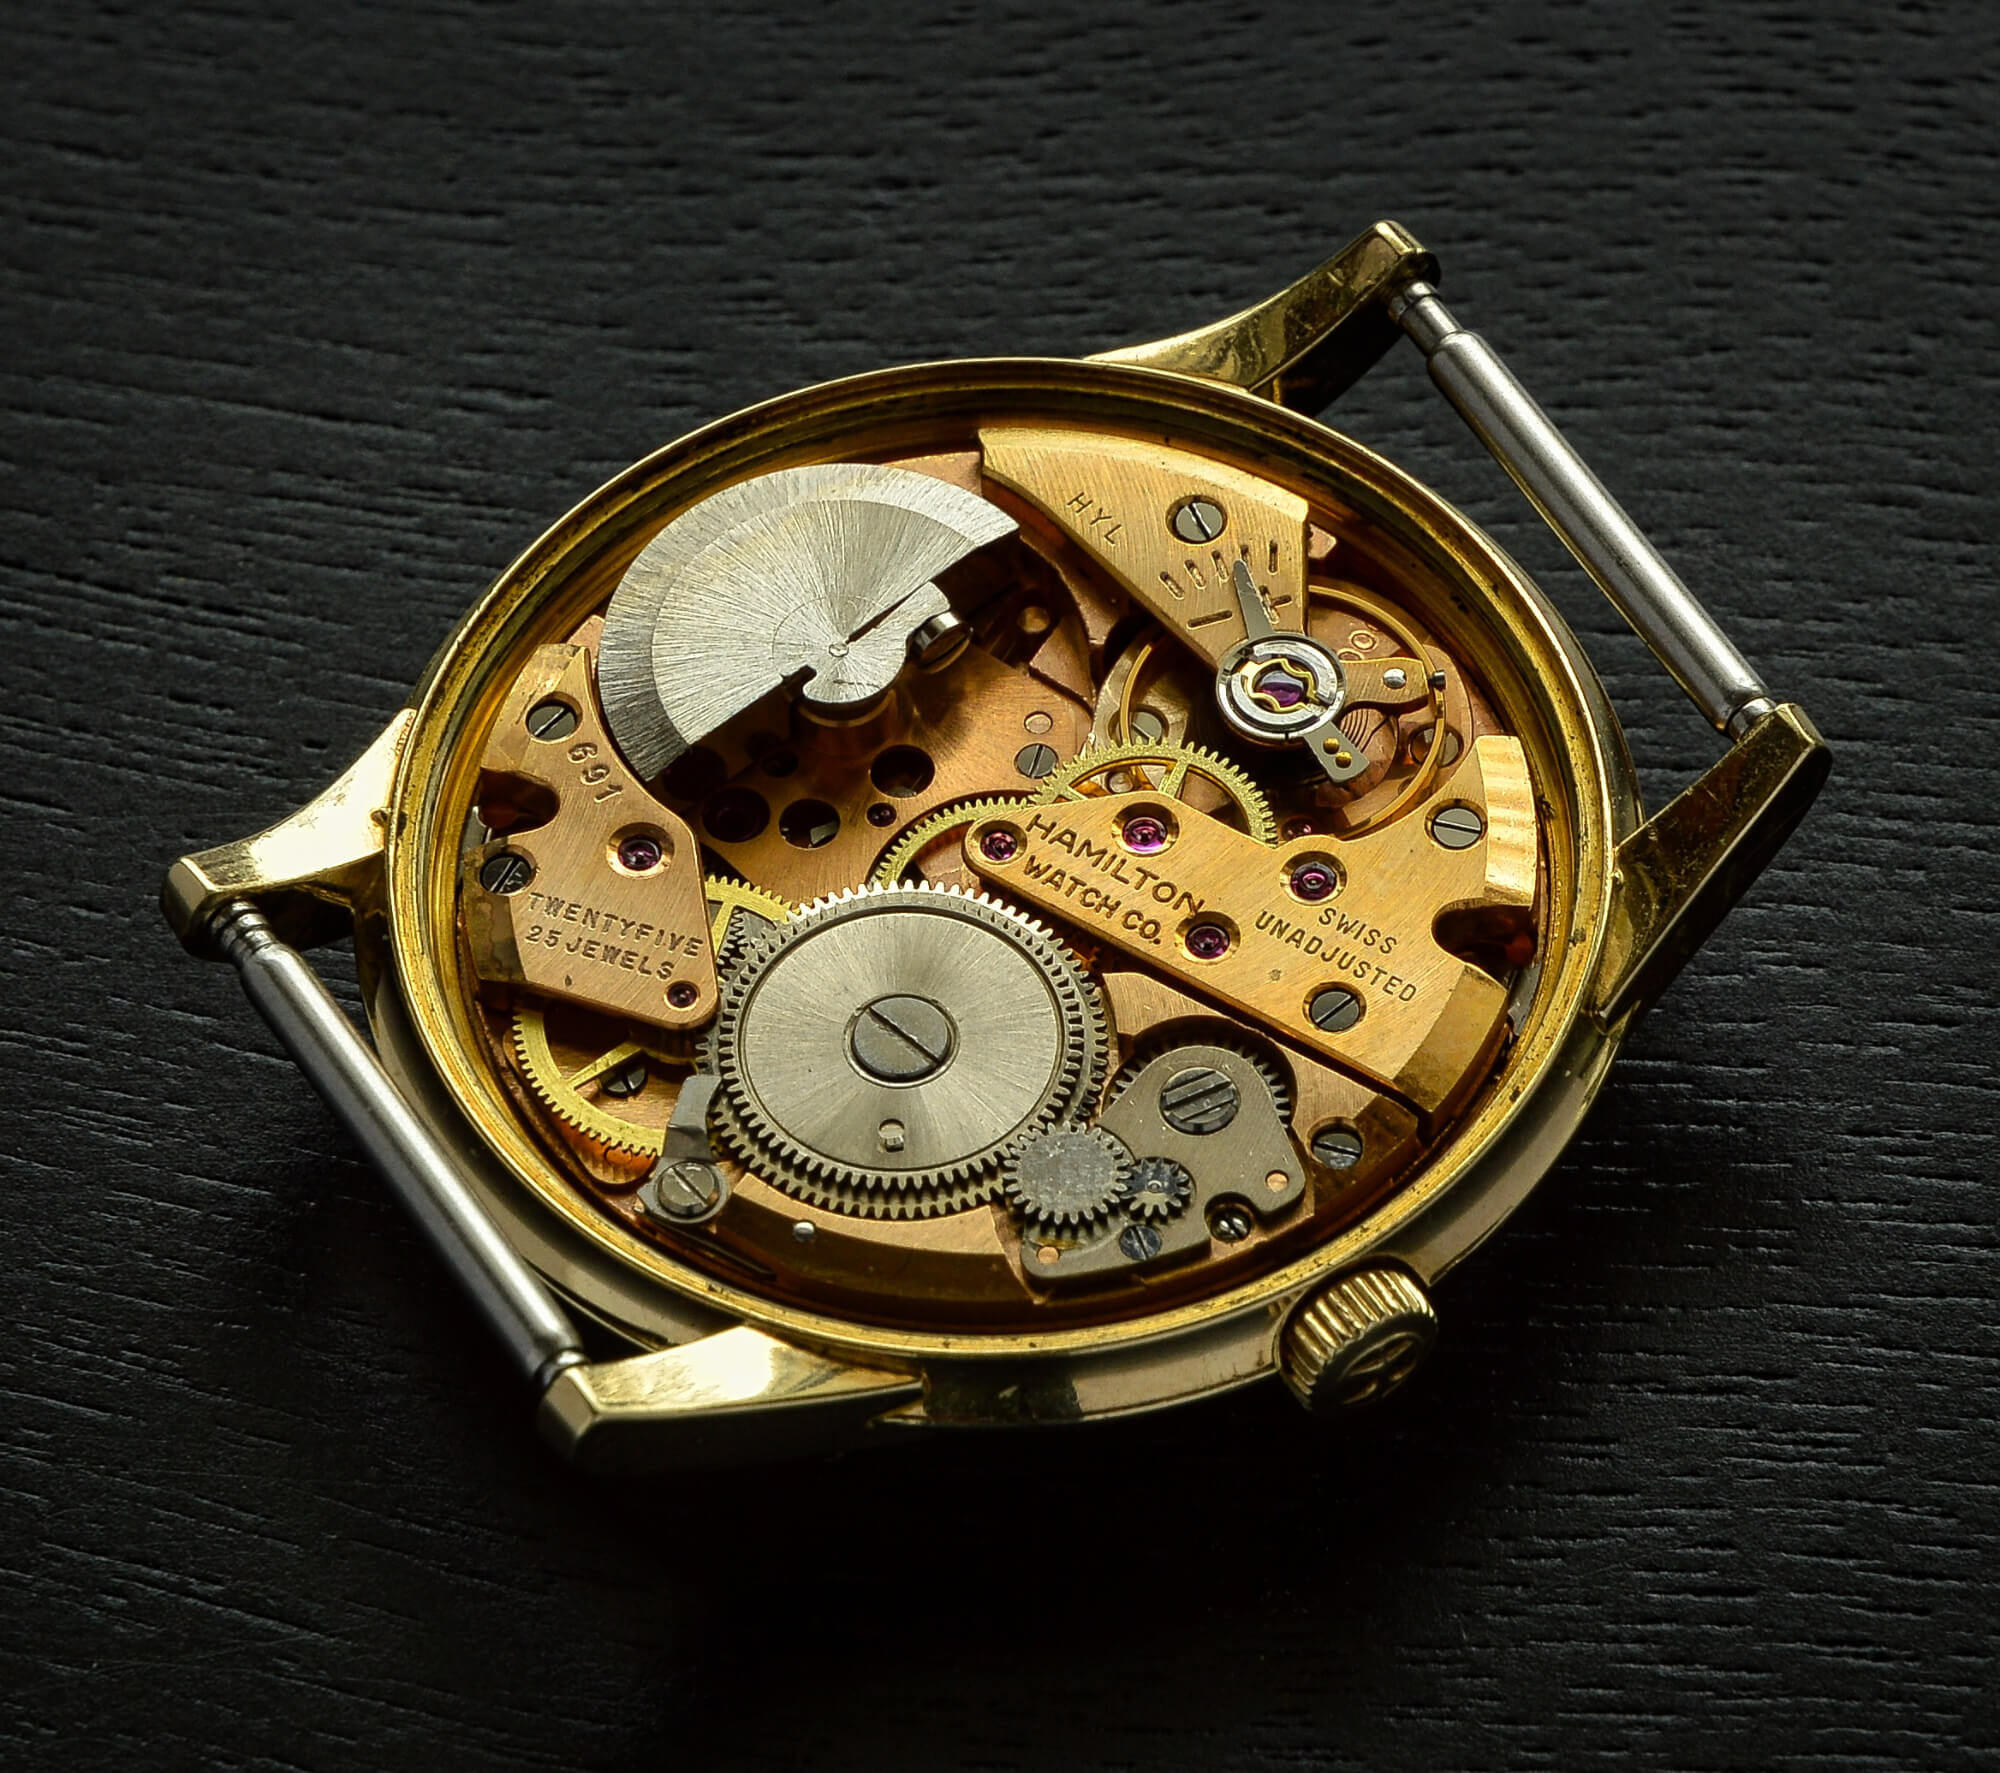 buying-gold-watches-tips-01